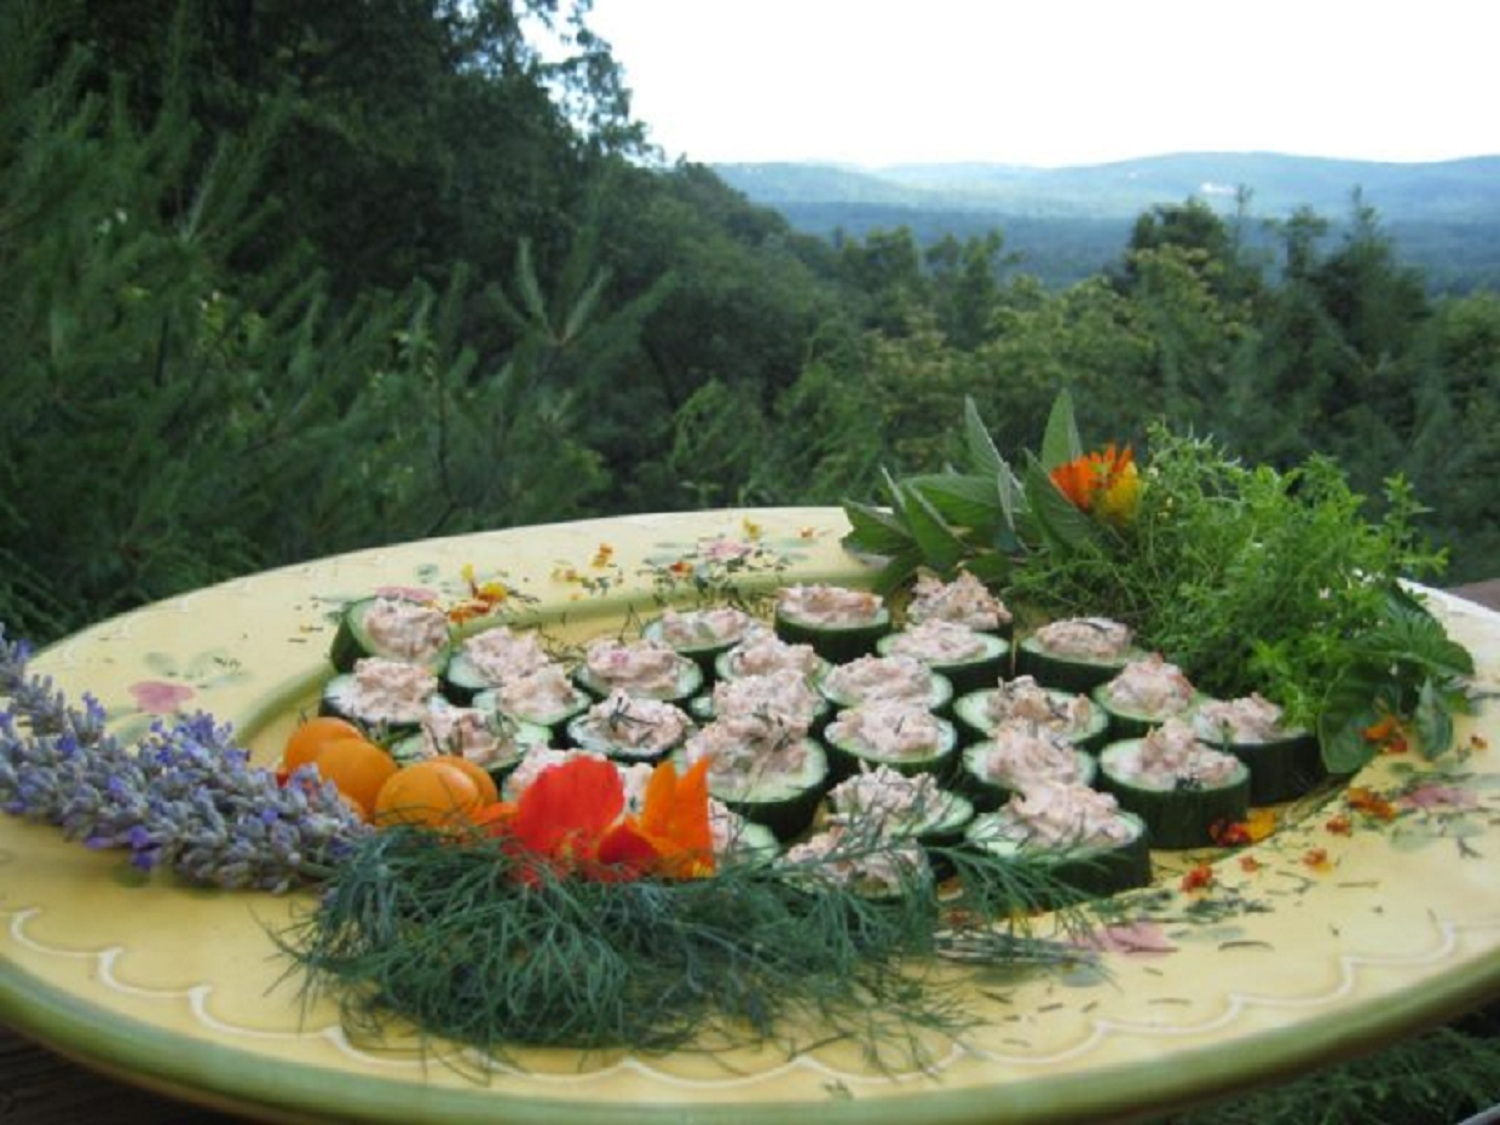 Smoked Trout Dip served in Cucumber Cups